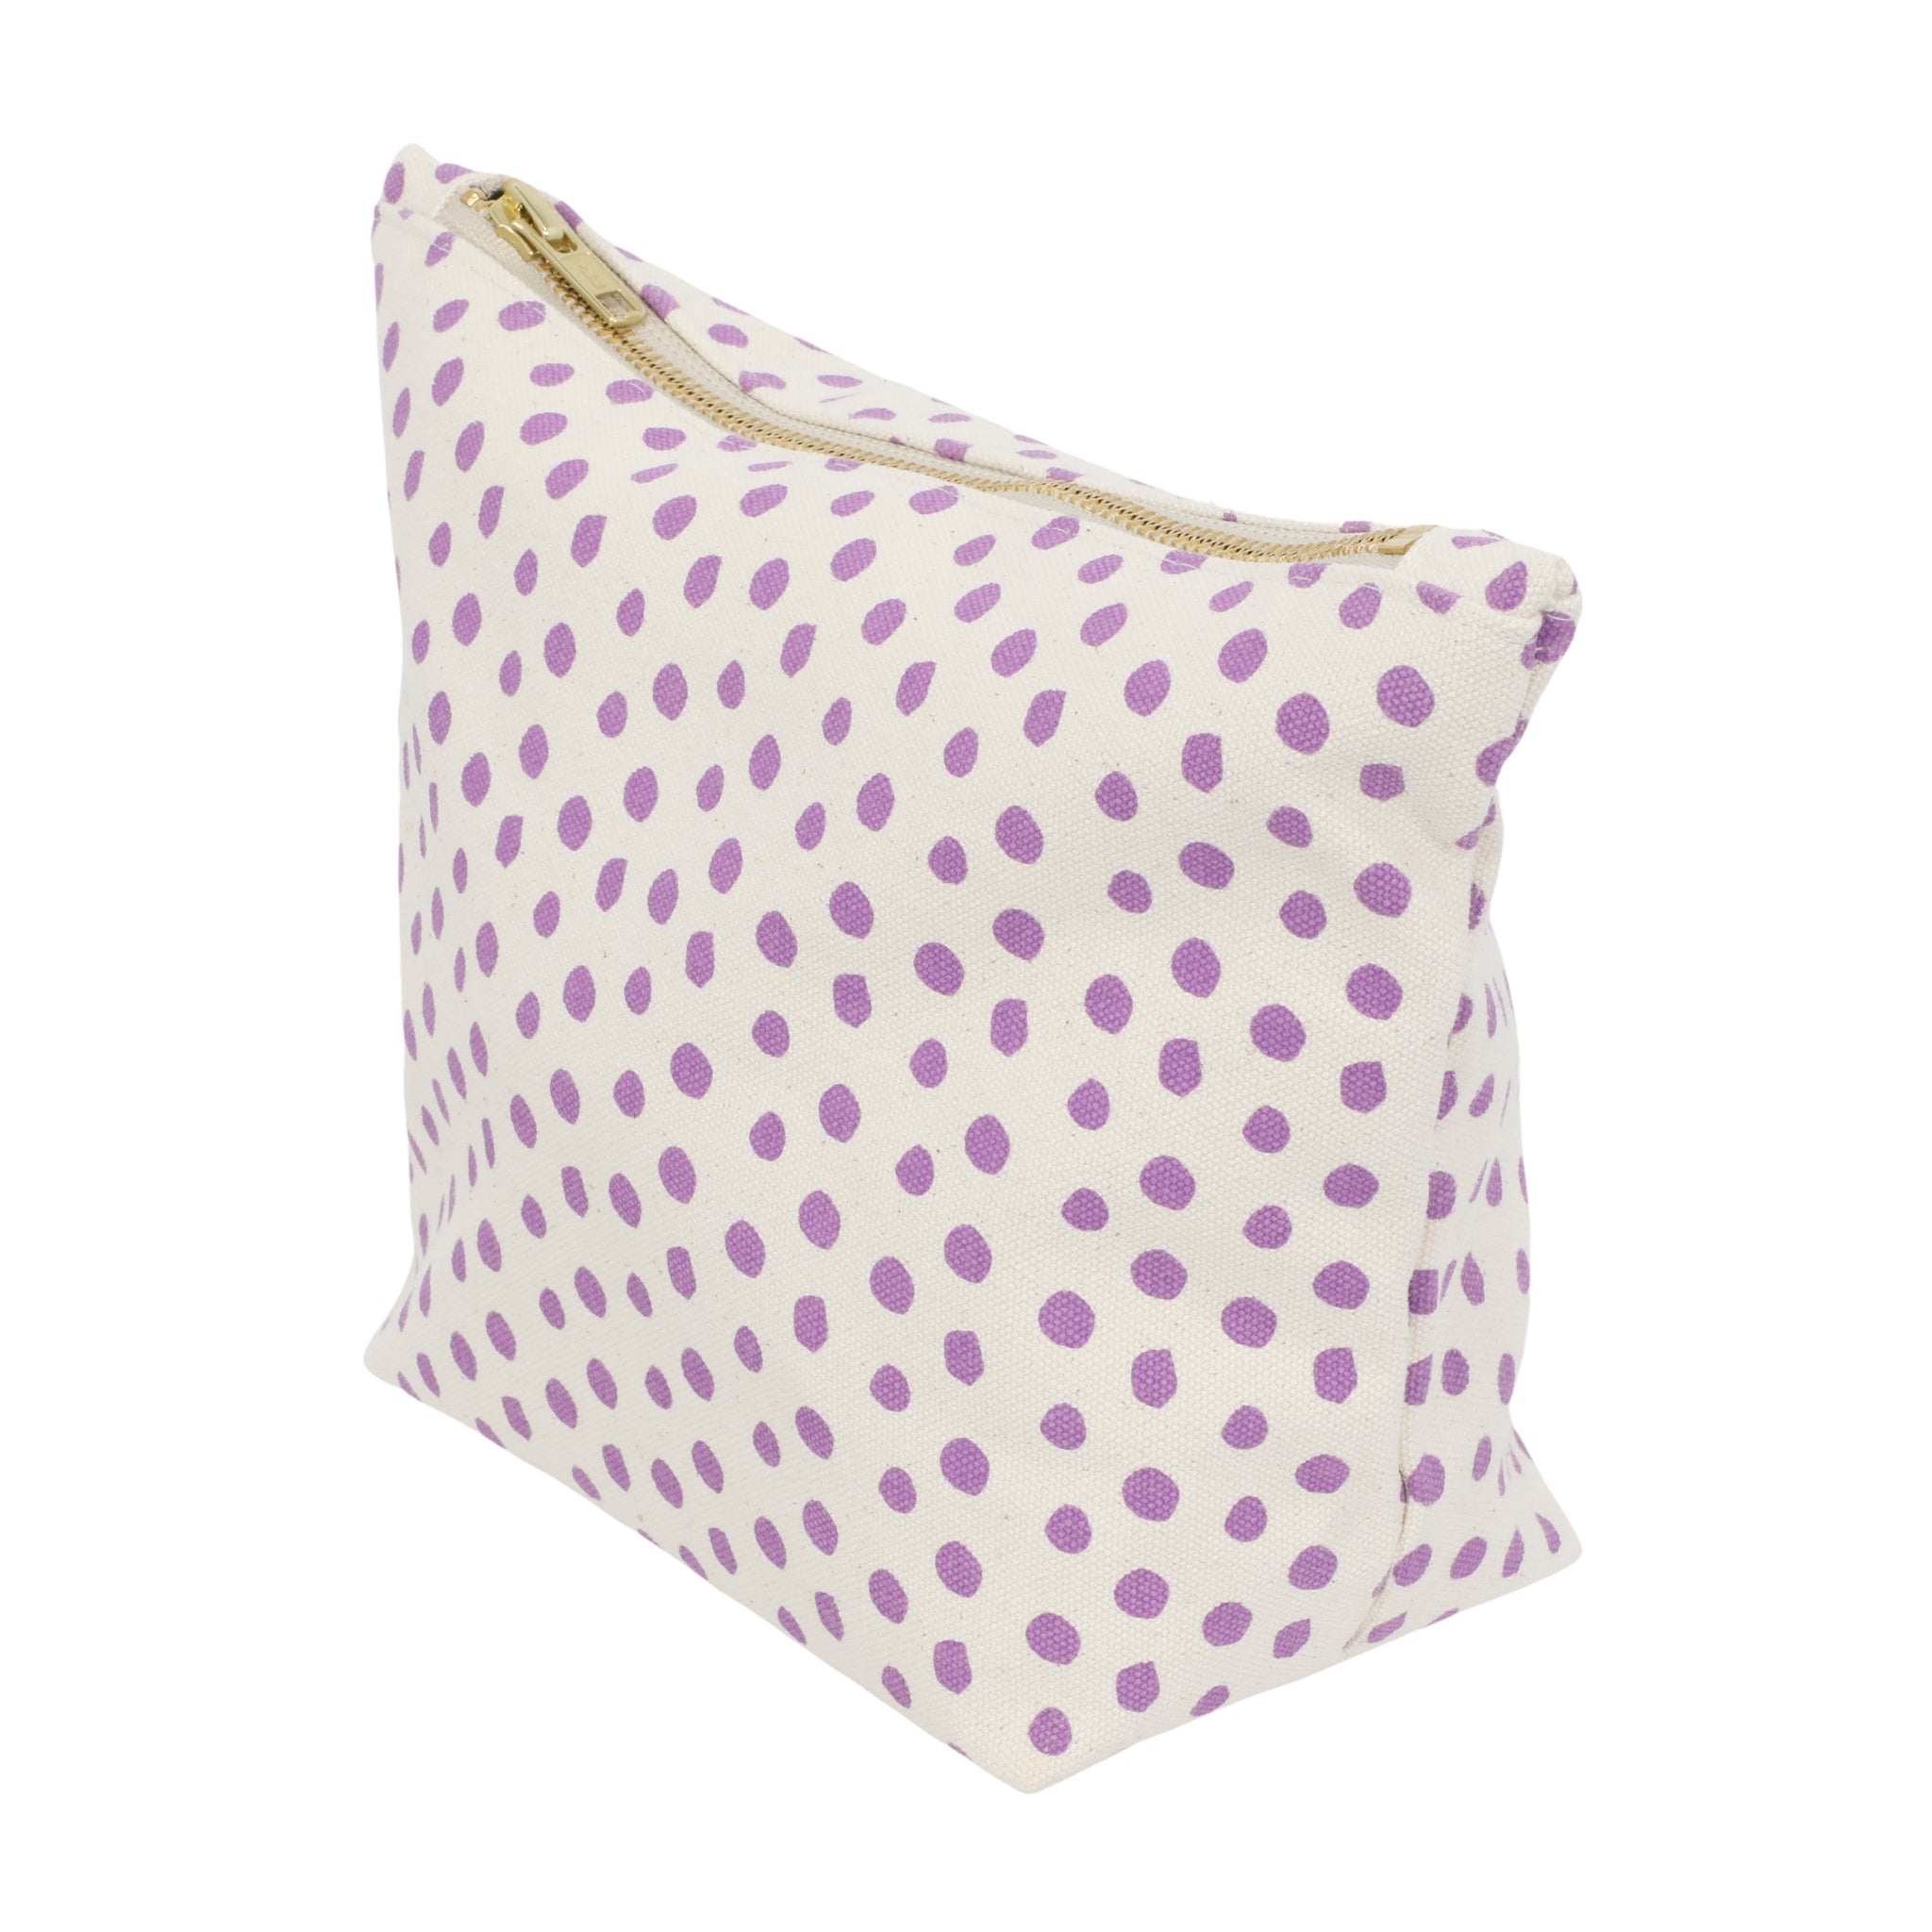 Tiny Dots Zipper Bag